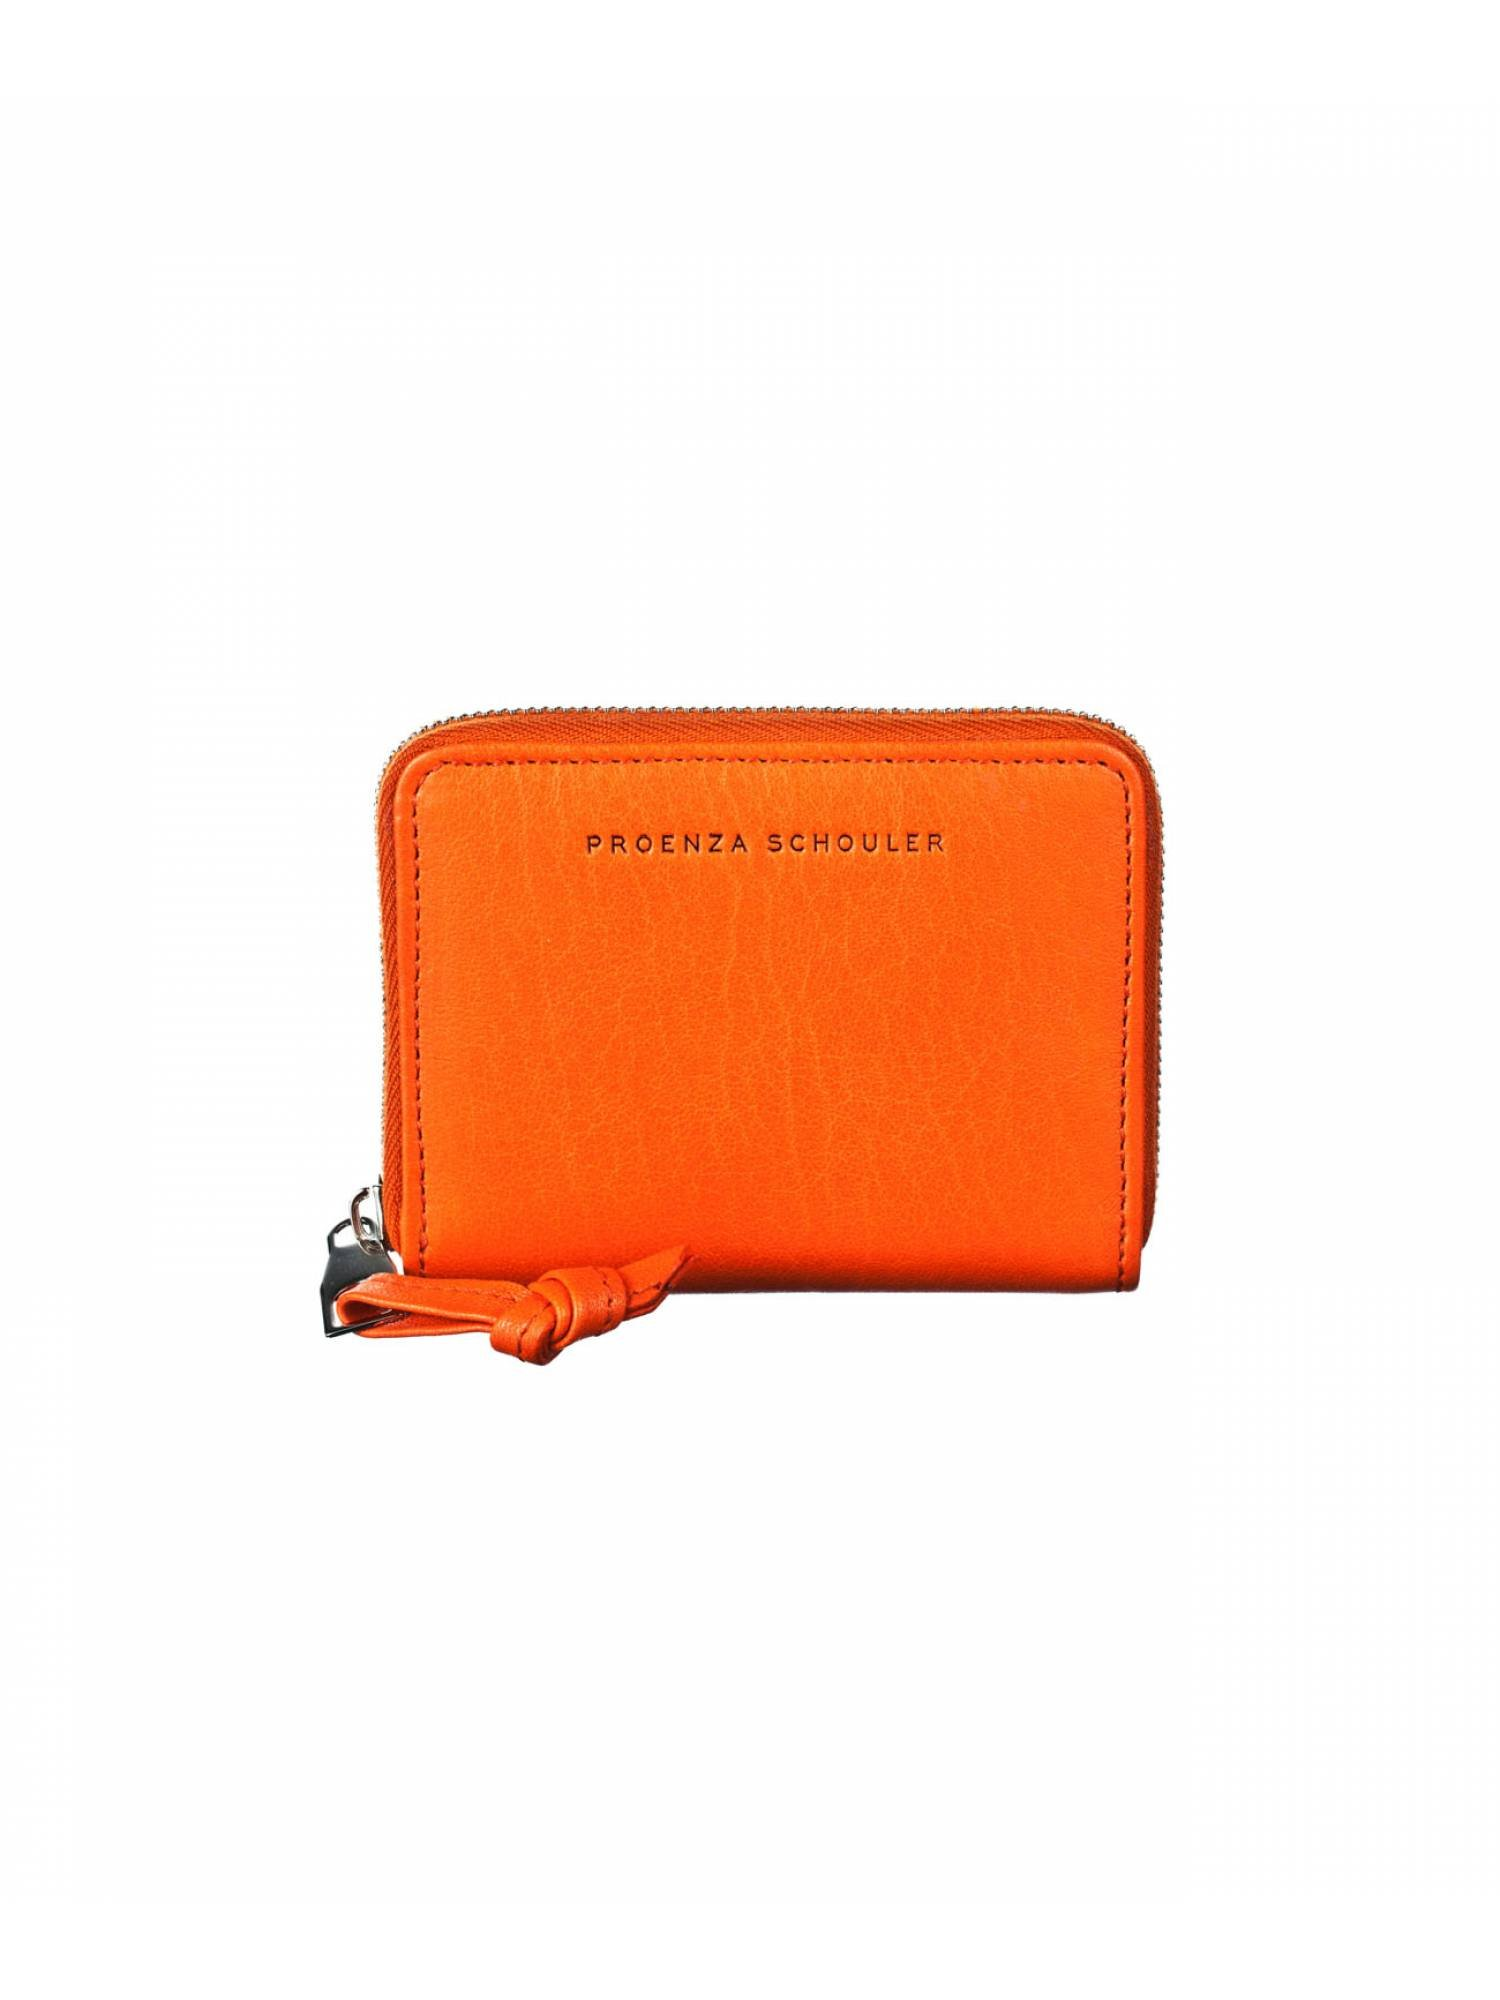 Proenza Schouler Zip Card Case Wallet (Orange)